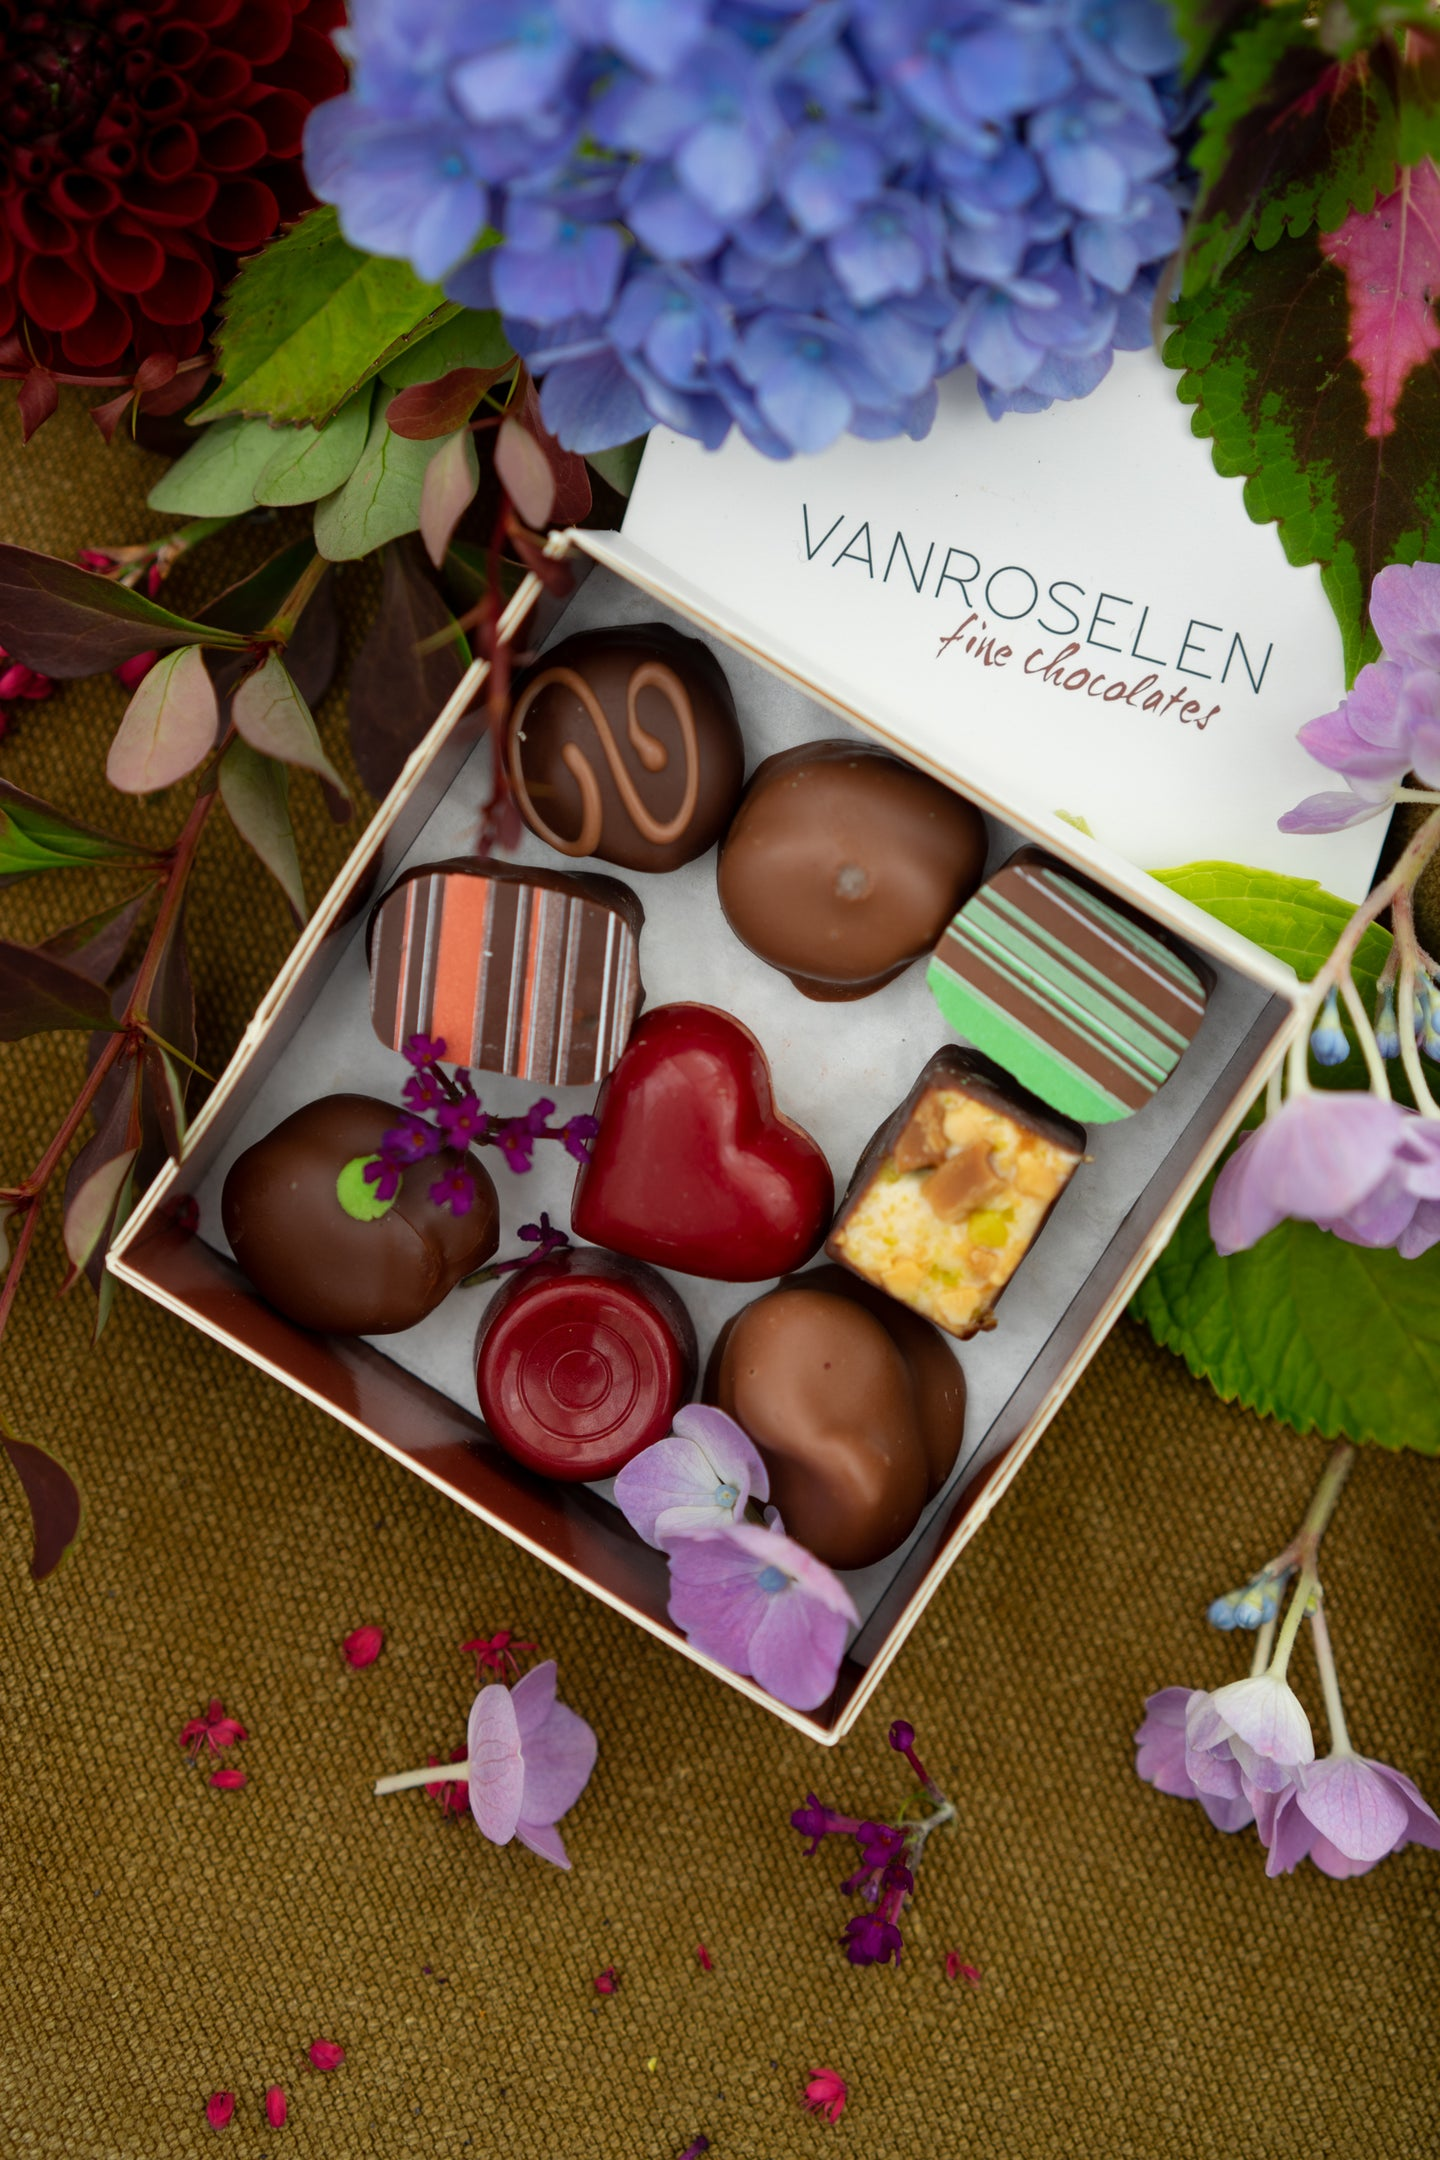 Handmade local chocolate bonbons (small) - deliver sweetness!